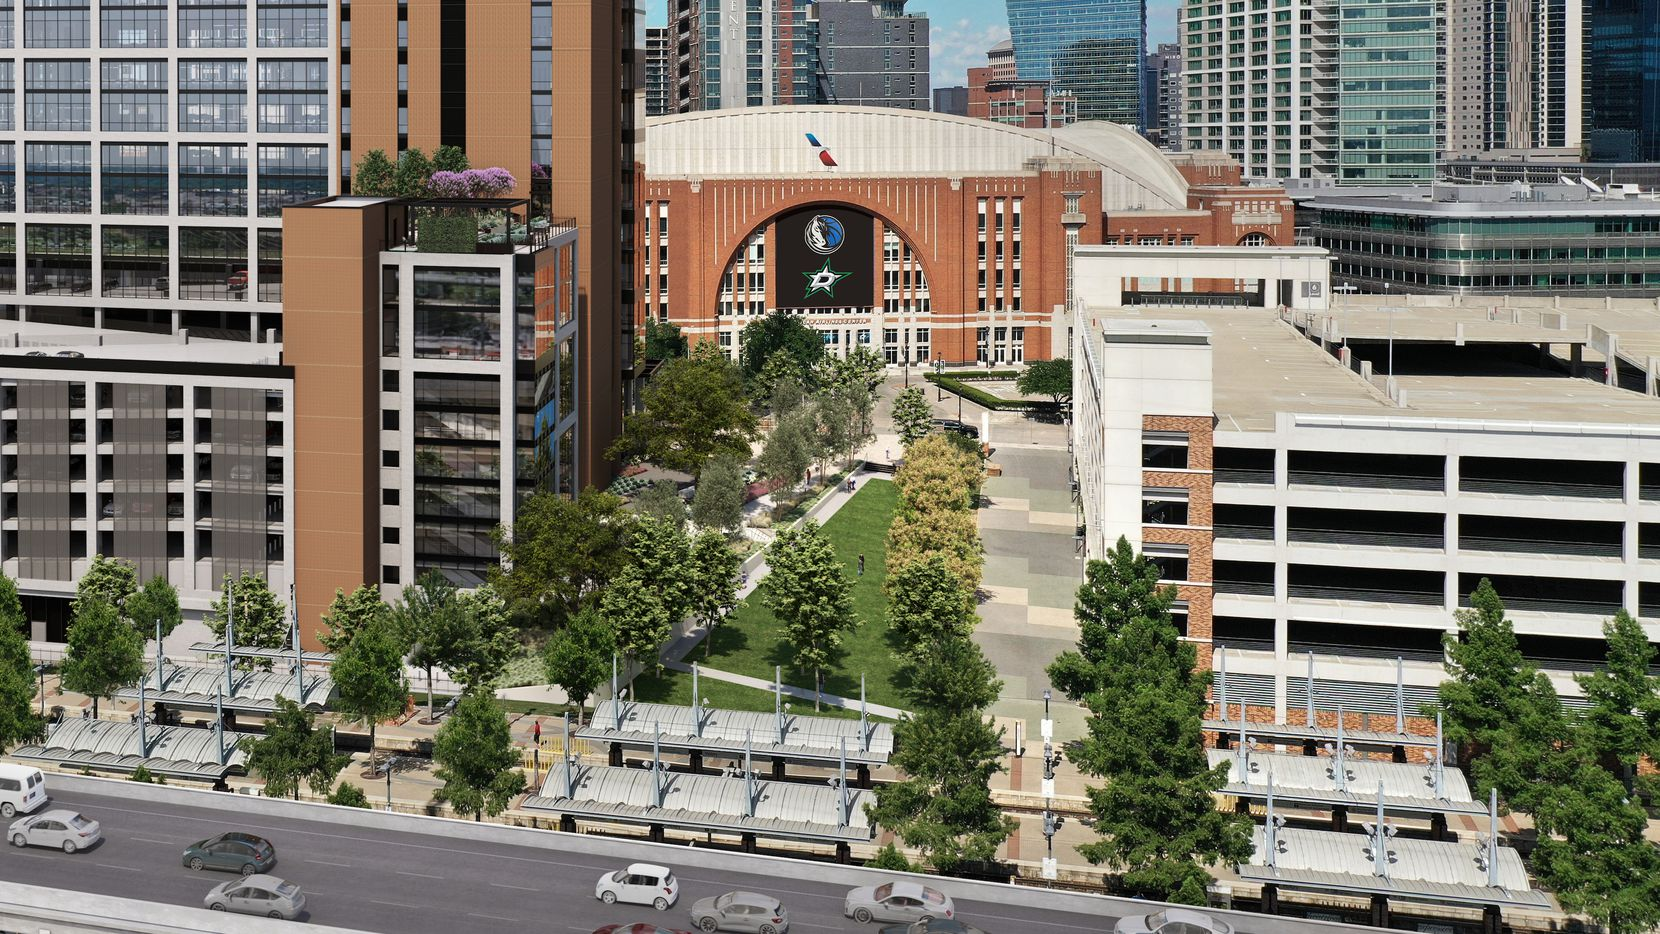 Victory Commons overlooks a new one-acre landscaped plaza in front of the American Airlines Center.